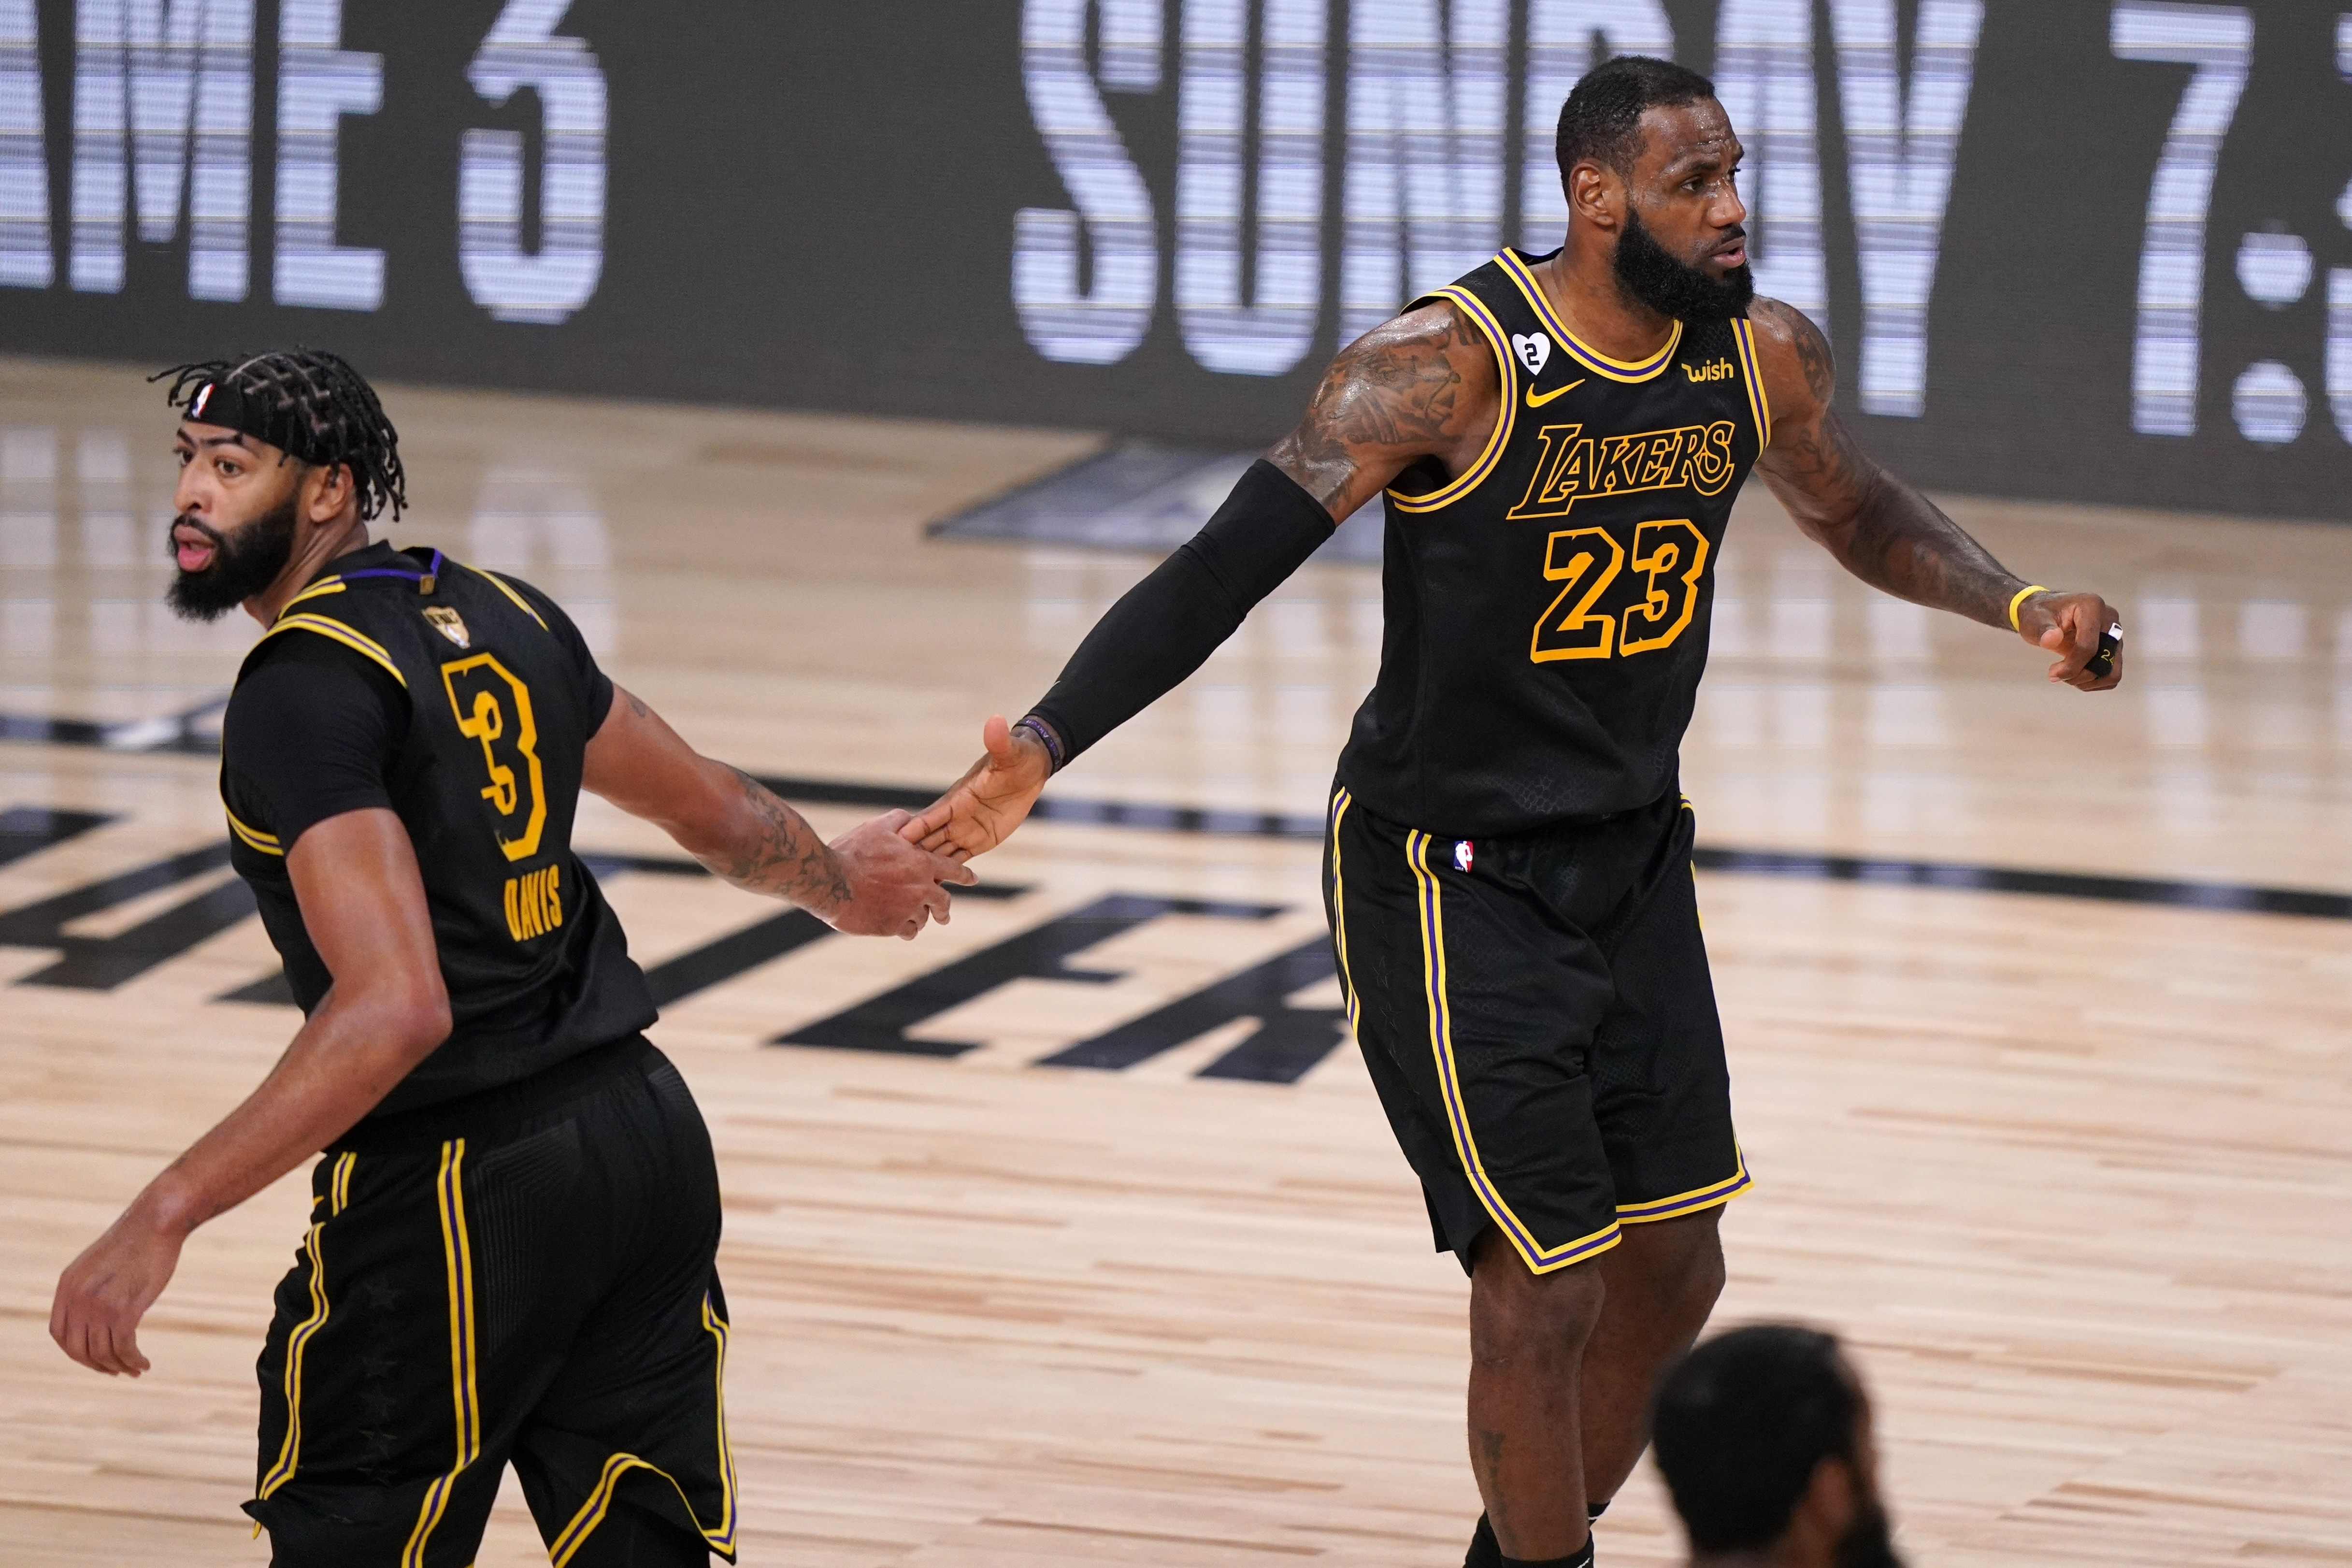 Lakers Pick Good Time For A Winning Streak Over Heat The Boston Globe